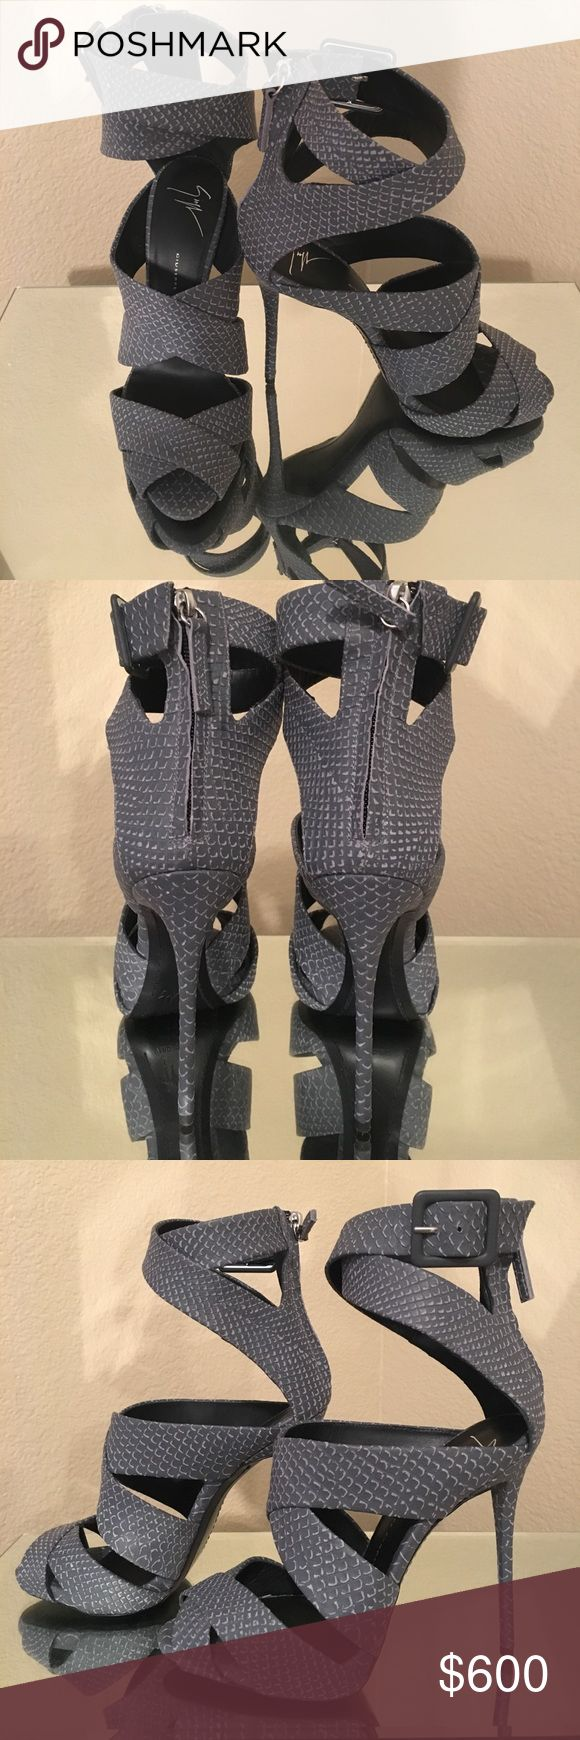 Giuseppe Zanotti Coline Printed Yard Jeans Heels Authentic grey Giuseppe heels. Size 38. Never worn. ACCEPTING OFFERS, but no lowballing or trades!  •Comes with original dust bag, care card, authenticity card & box.   •Slight scuffing on the bottom of right shoe, as shown in the last photo. Not visible when wearing.  •Retail at shopbop.com for $1115 Giuseppe Zanotti Shoes Heels